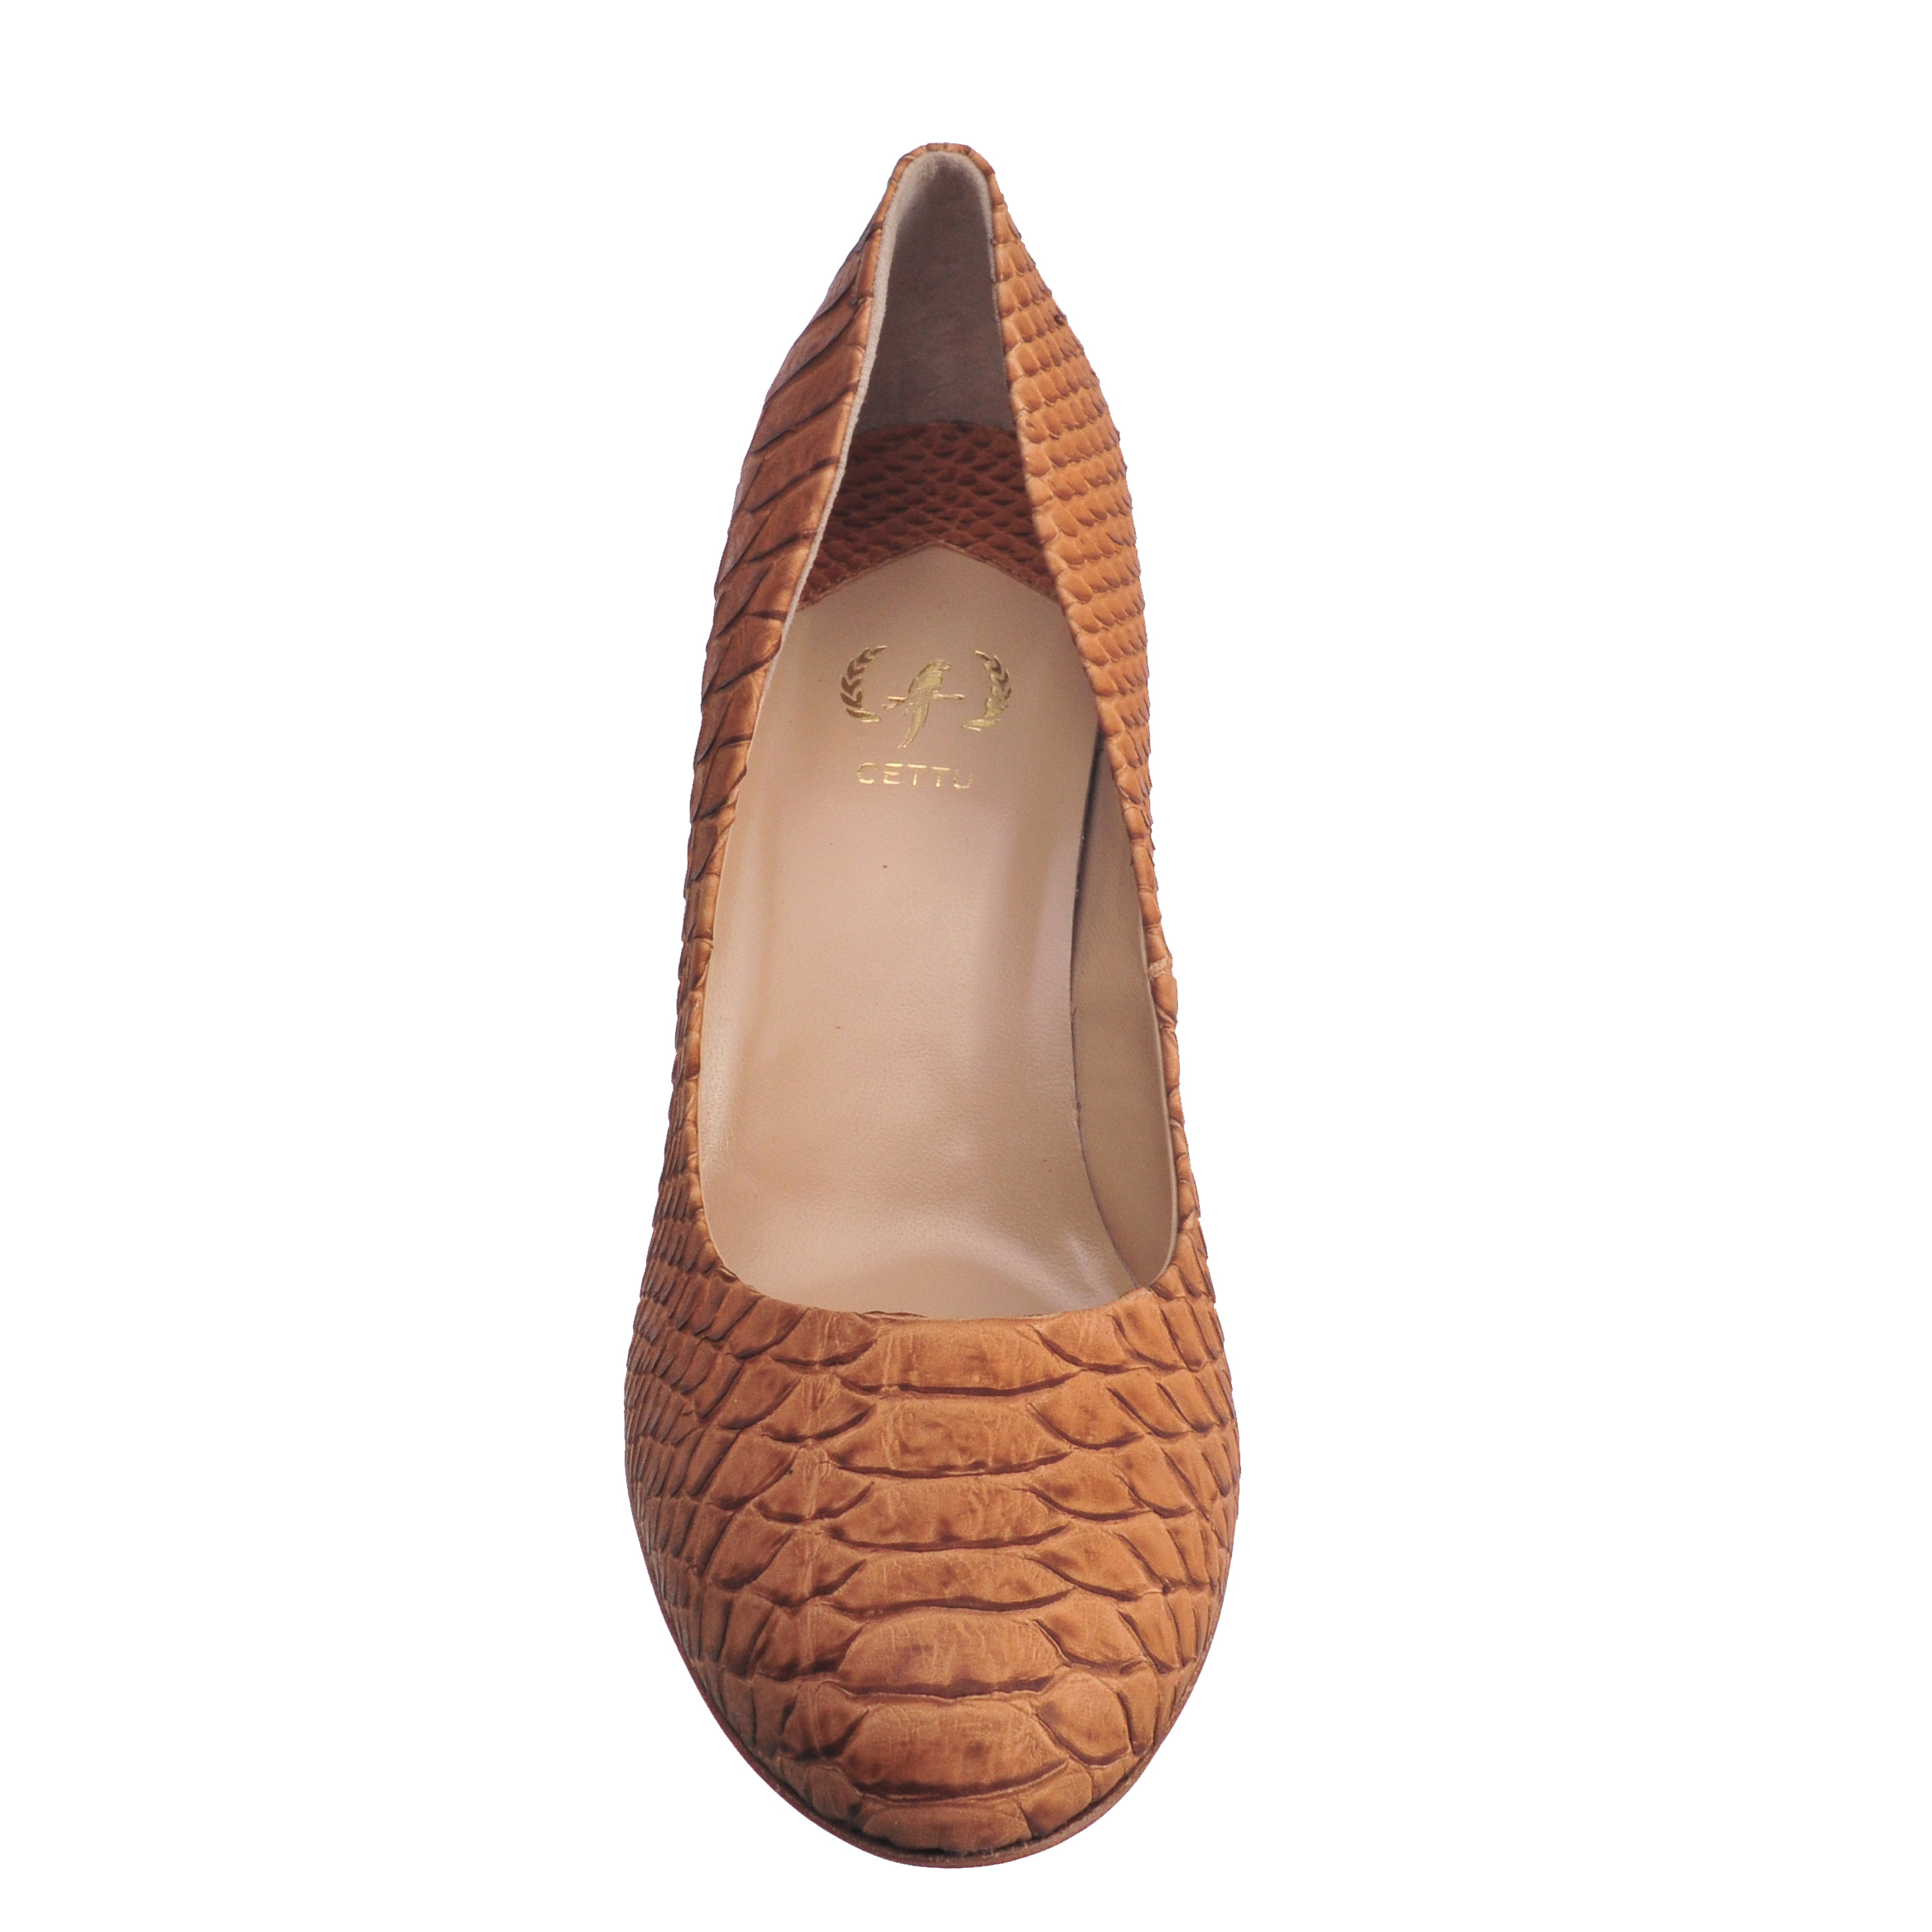 [SHOES / PUMP & HEEL] YESICA  (WILD SNAKE / CAMEL) (MADE IN ITALY)